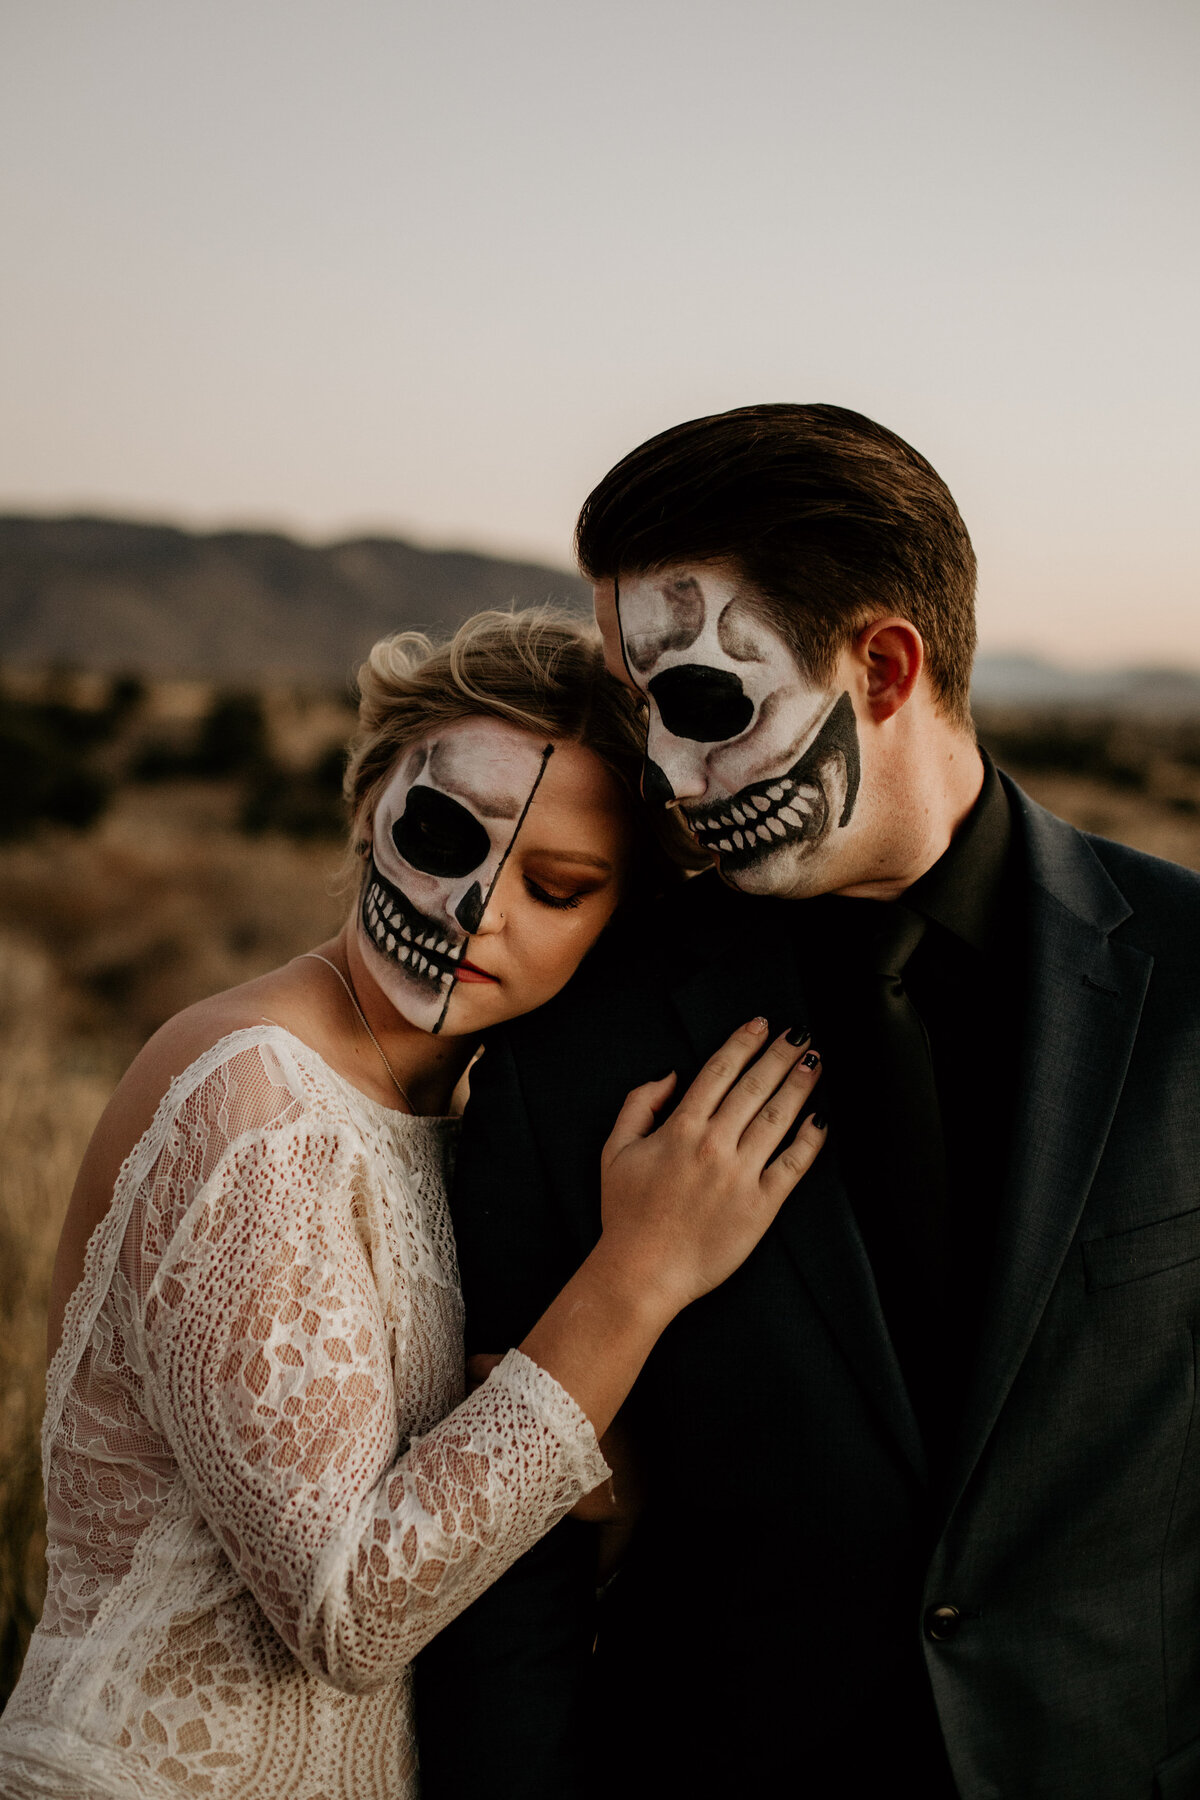 skeleton bride leaning on skeleton groom